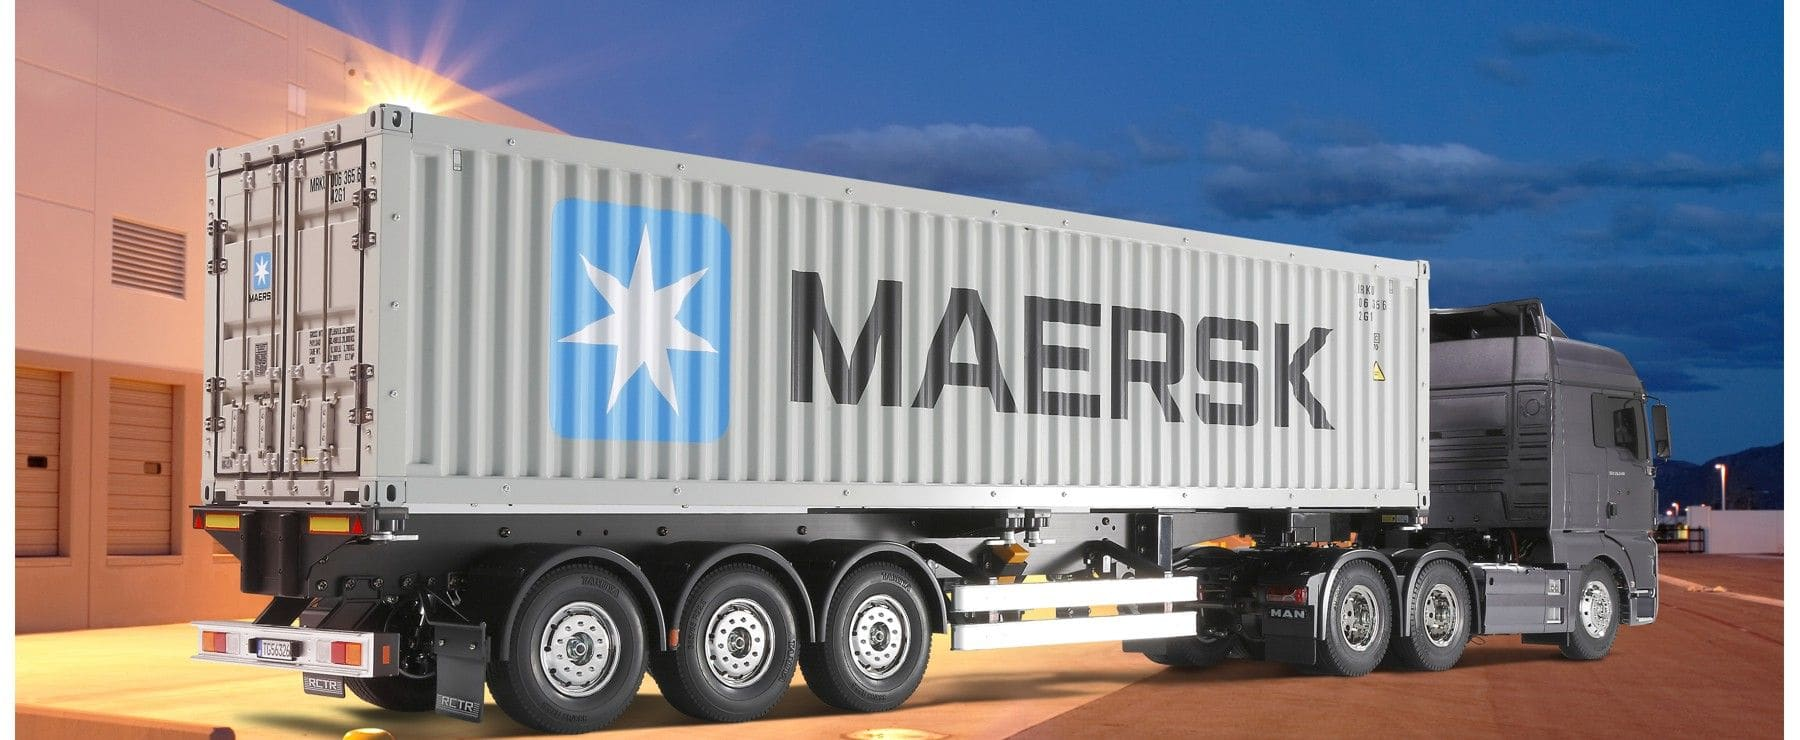 tamiya 56326 40 fu container auflieger maersk 1 14 f r rc truck online kaufen bei modellbau. Black Bedroom Furniture Sets. Home Design Ideas